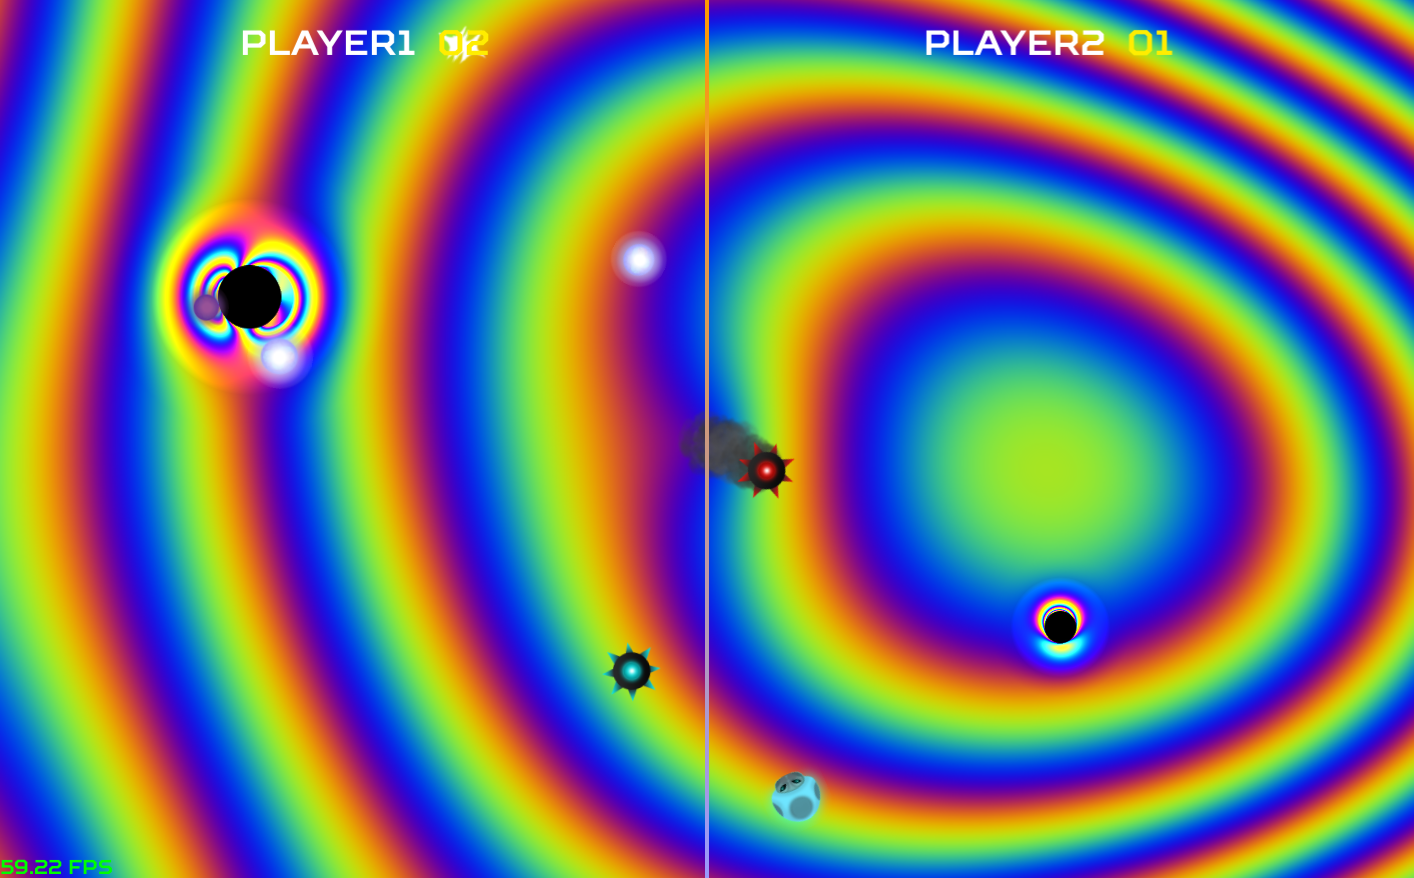 Black Hole Master screenshot. Image: laserlabs.itch.io